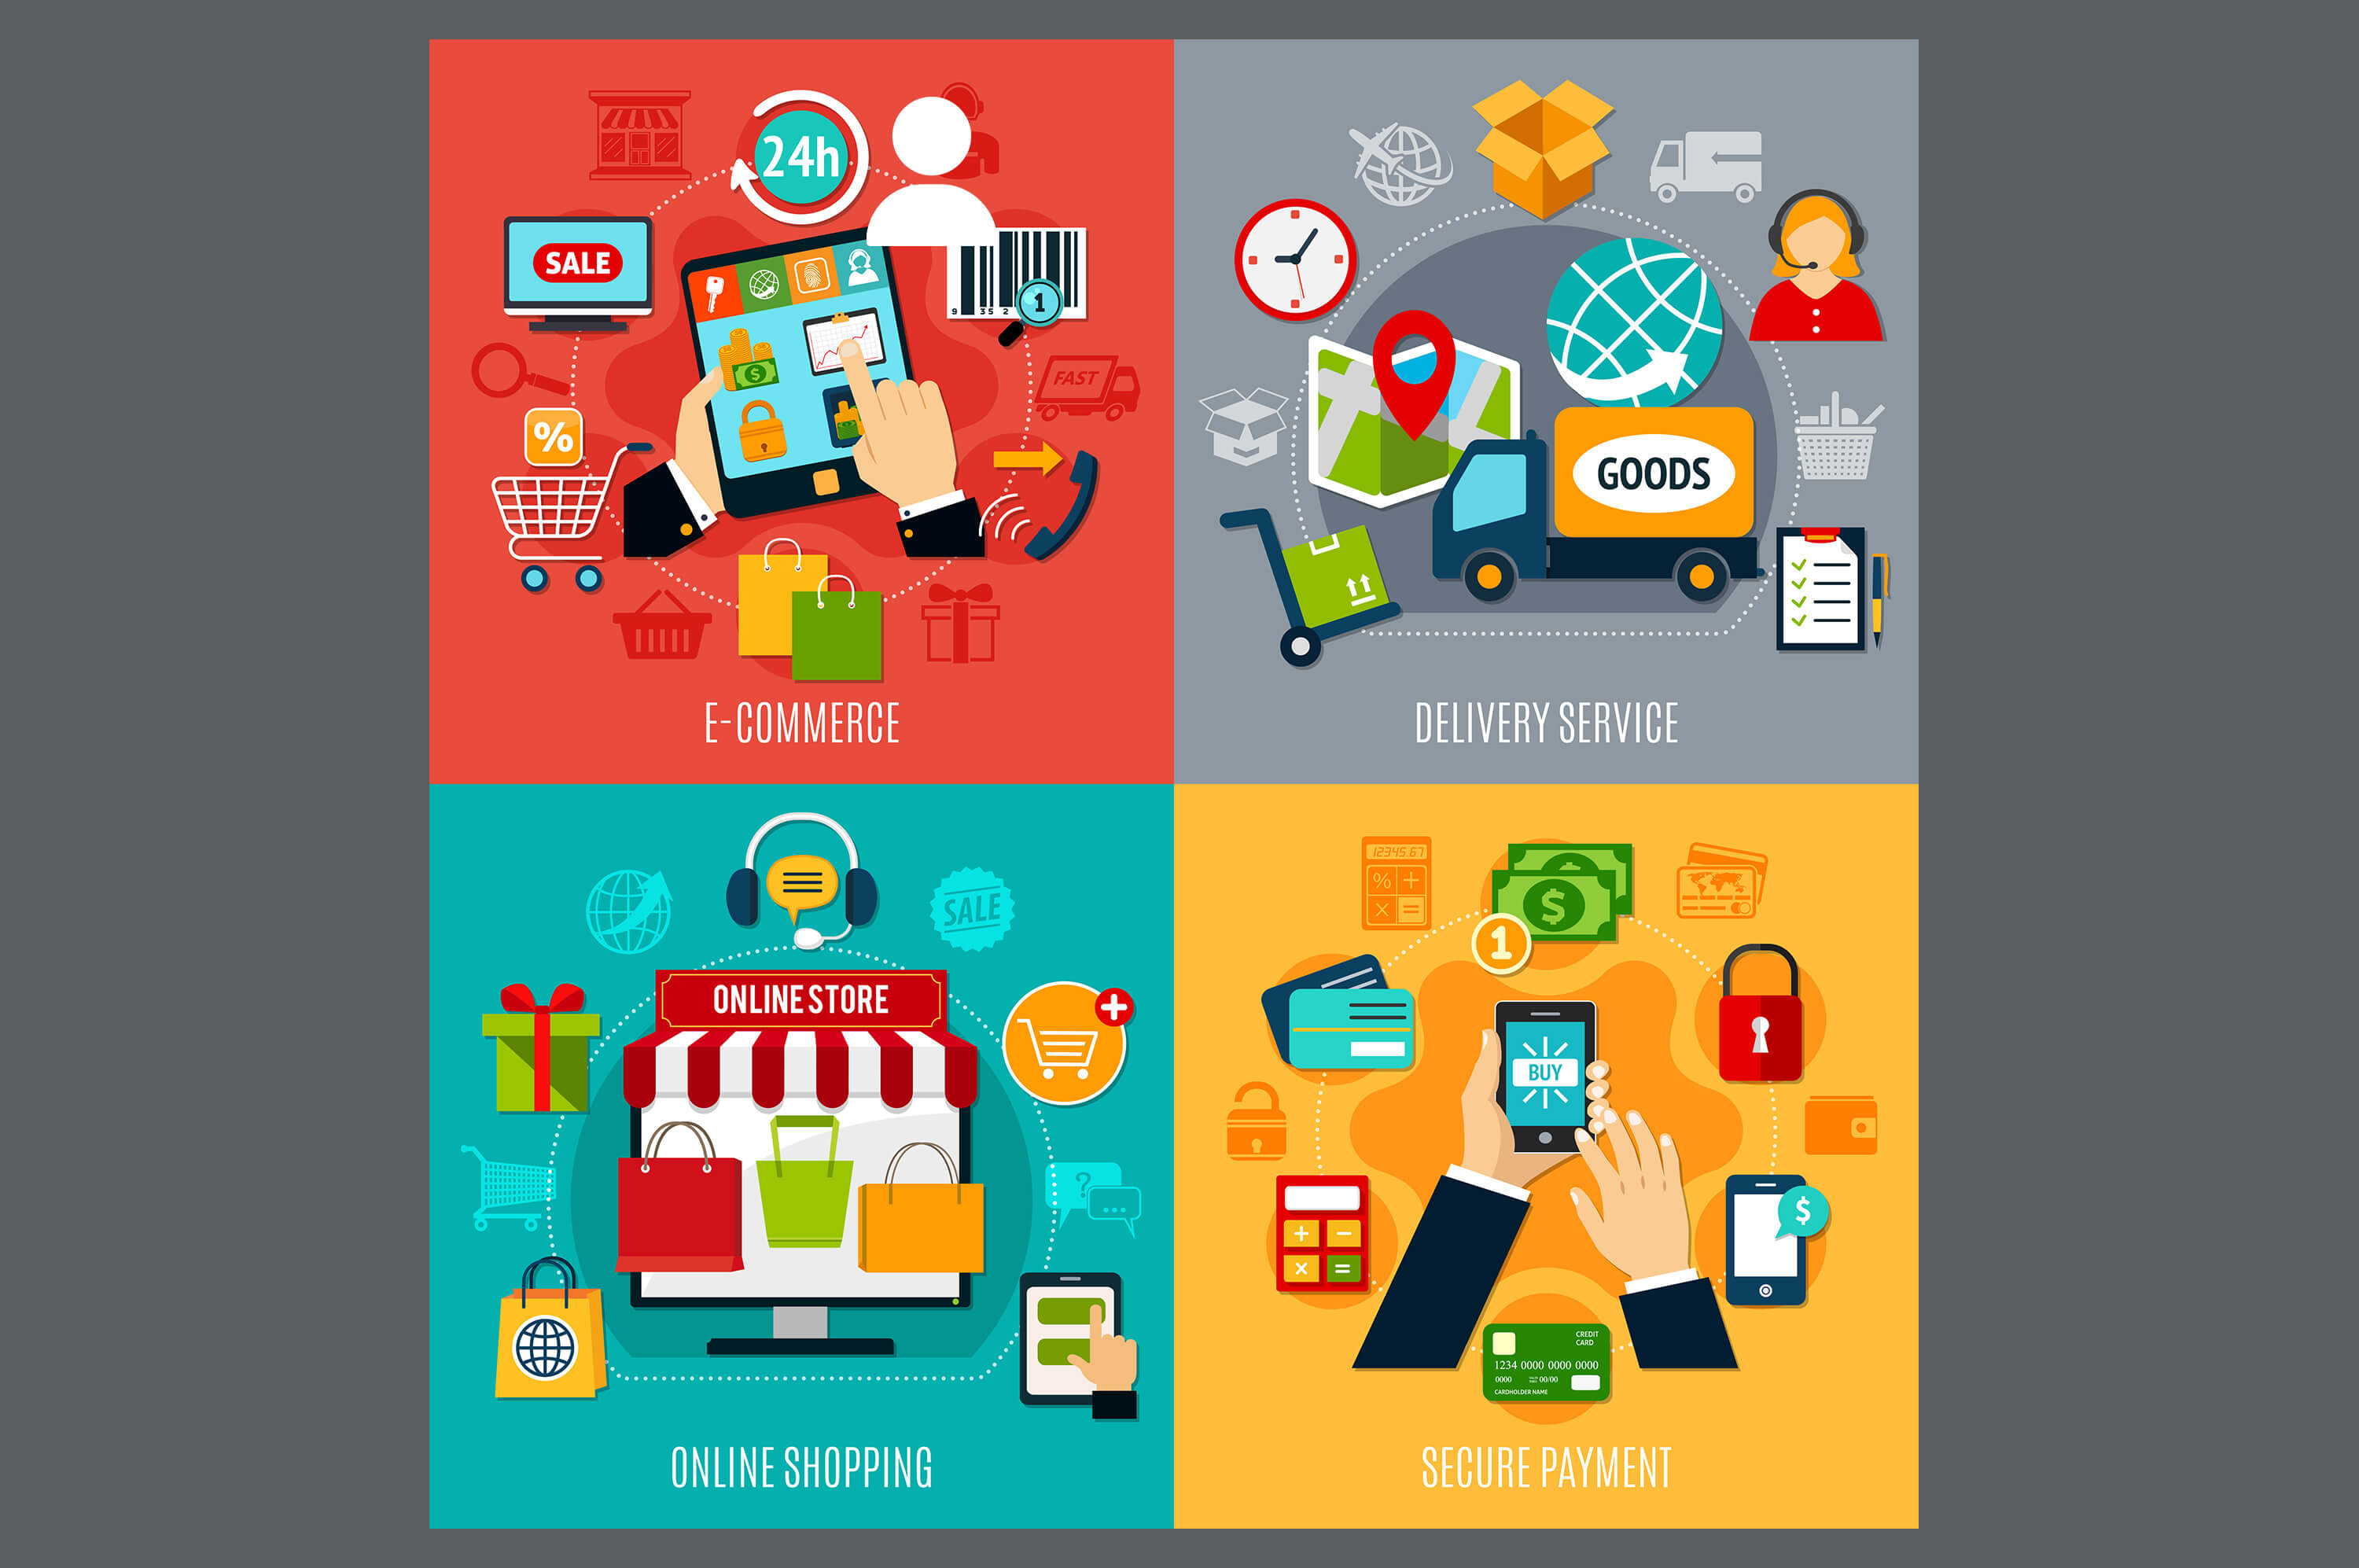 a collage of four images which describes e-commerce, delivery service, online shopping and secure payment